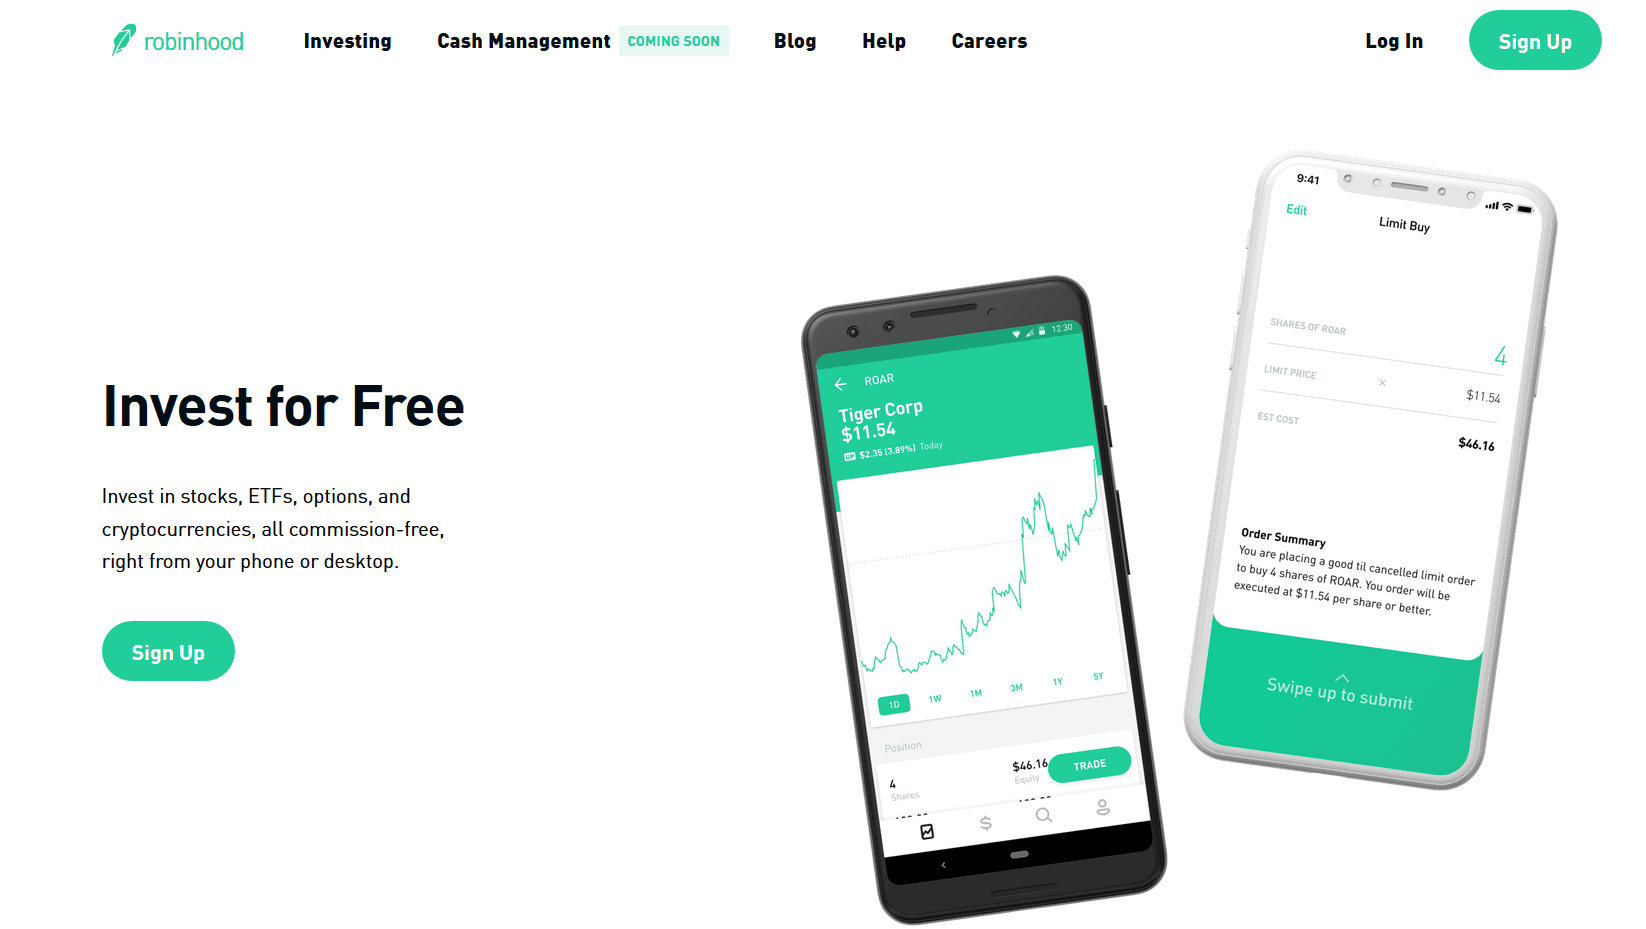 How To Report Robinhood On Taxes